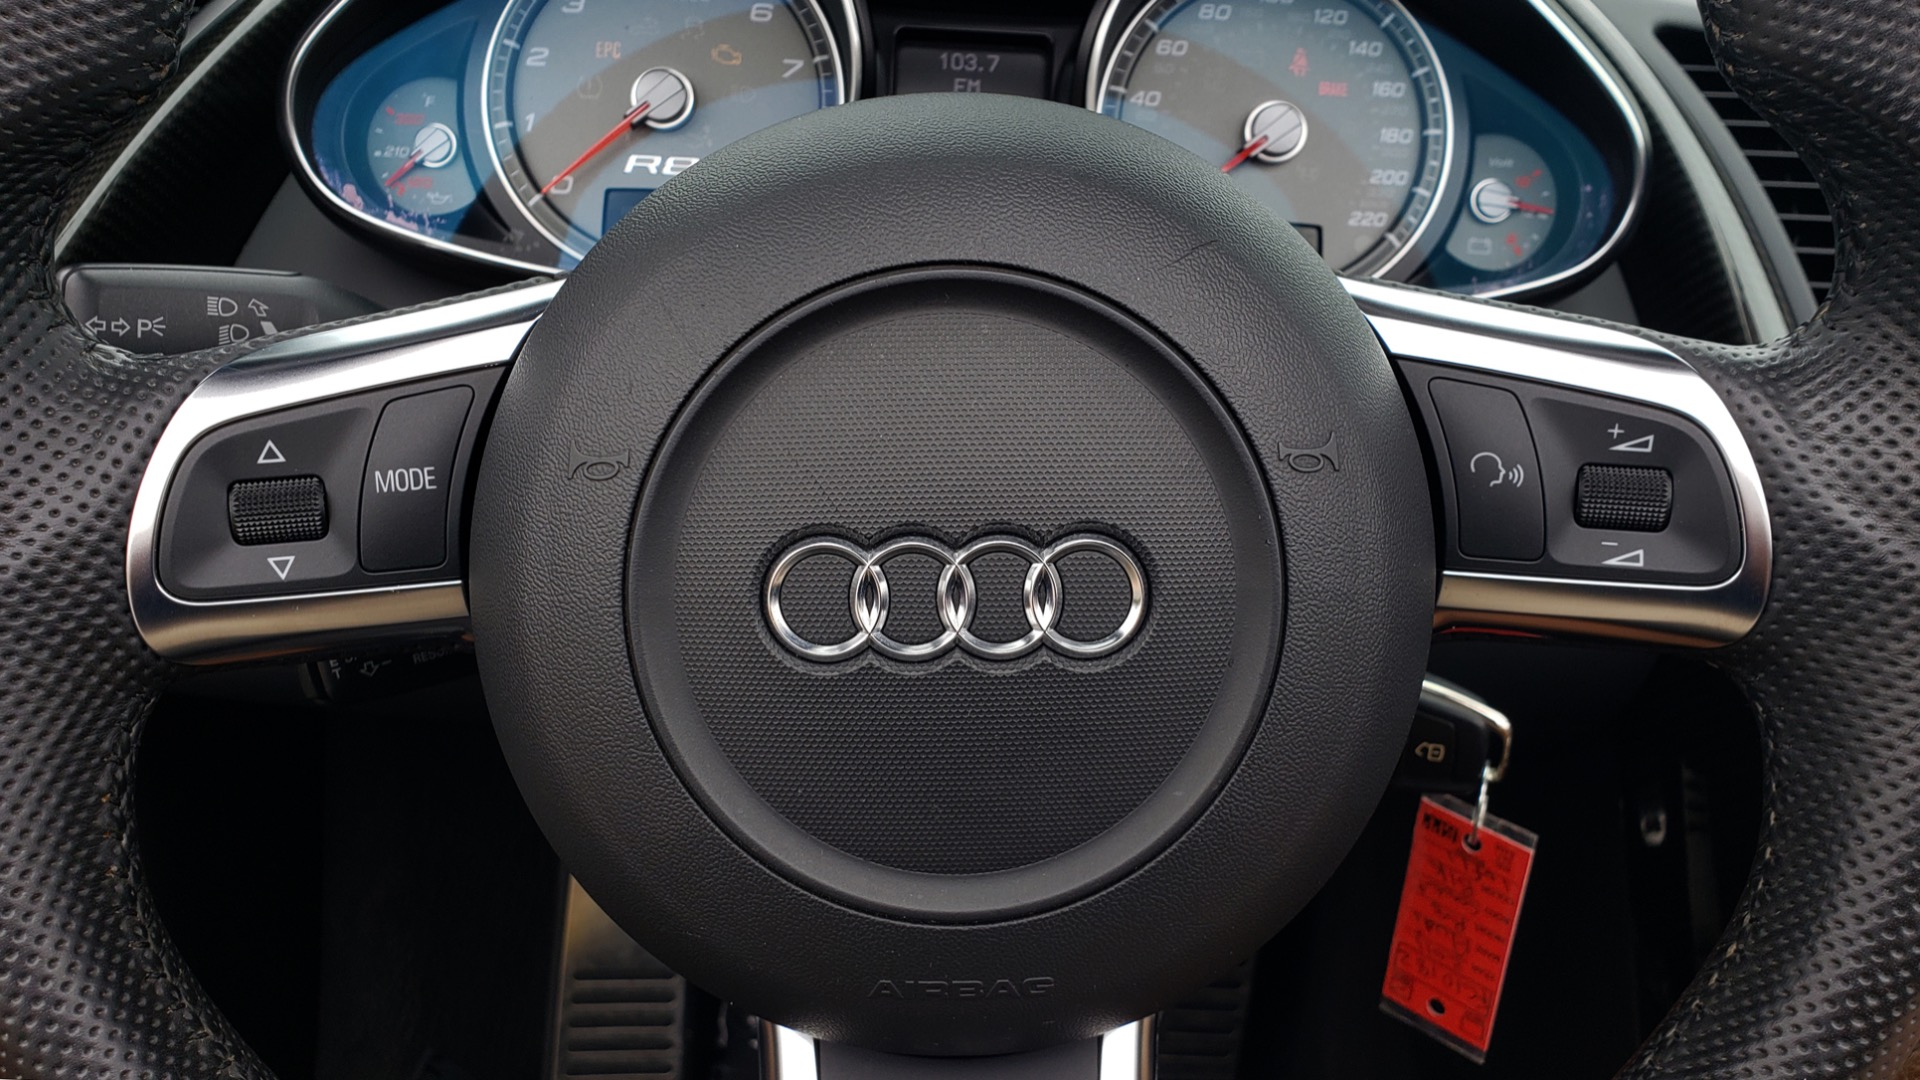 Used 2011 Audi R8 4.2L SPYDER QUATTRO / NAV / 19 IN WHEELS / LOW MILES for sale Sold at Formula Imports in Charlotte NC 28227 45